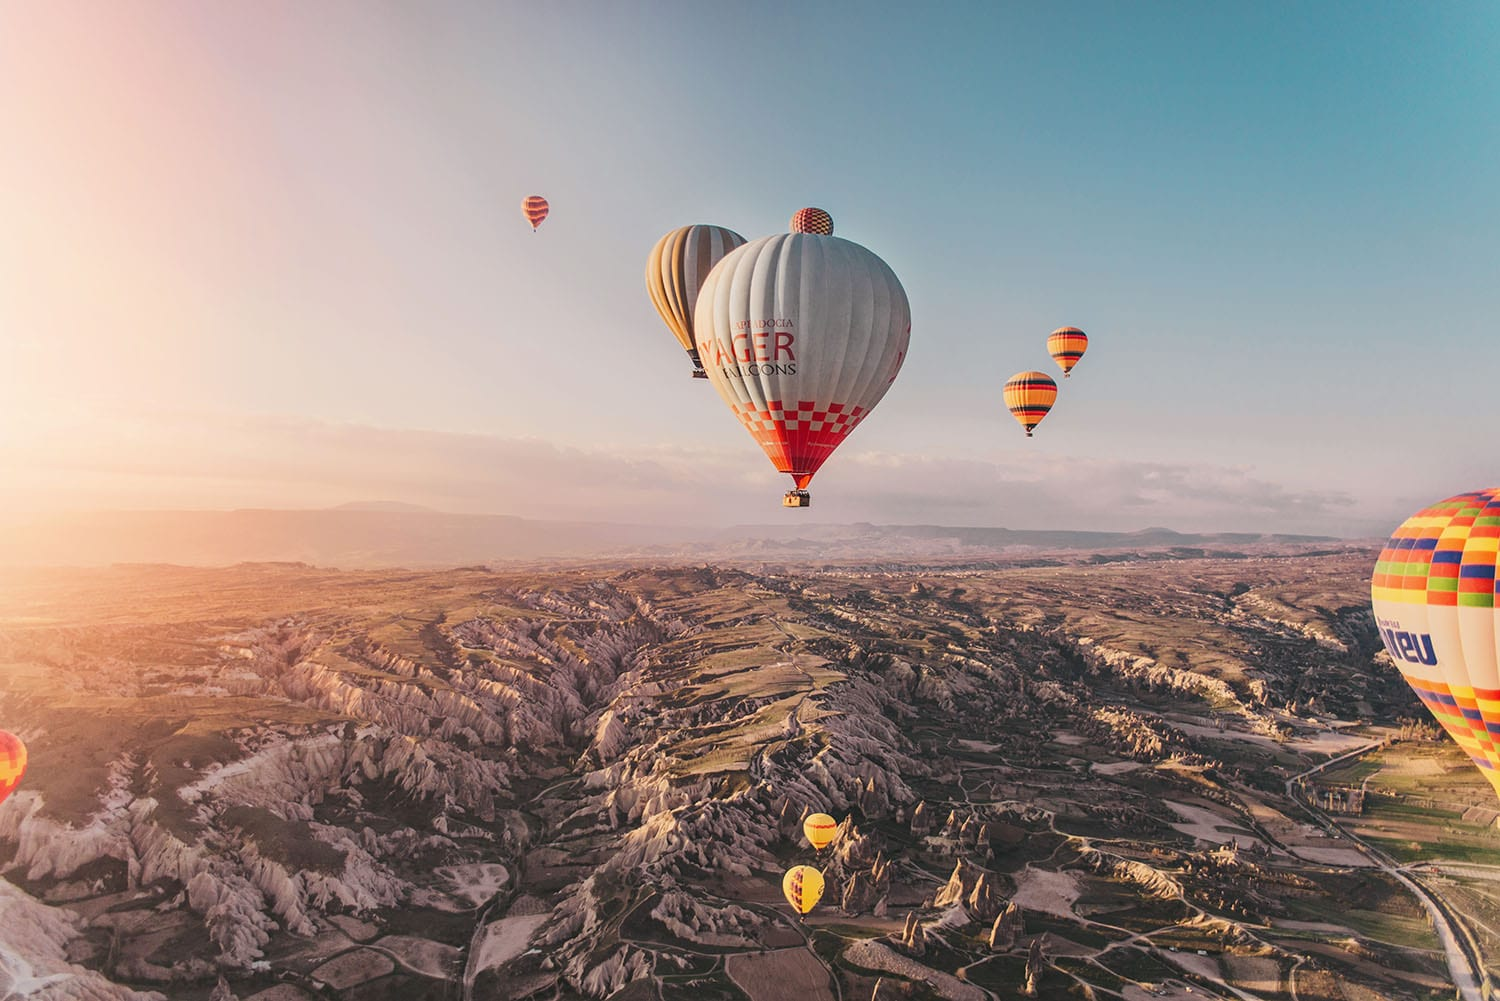 Stunning sunrise with hot air balloons in Cappadocia, Turkey